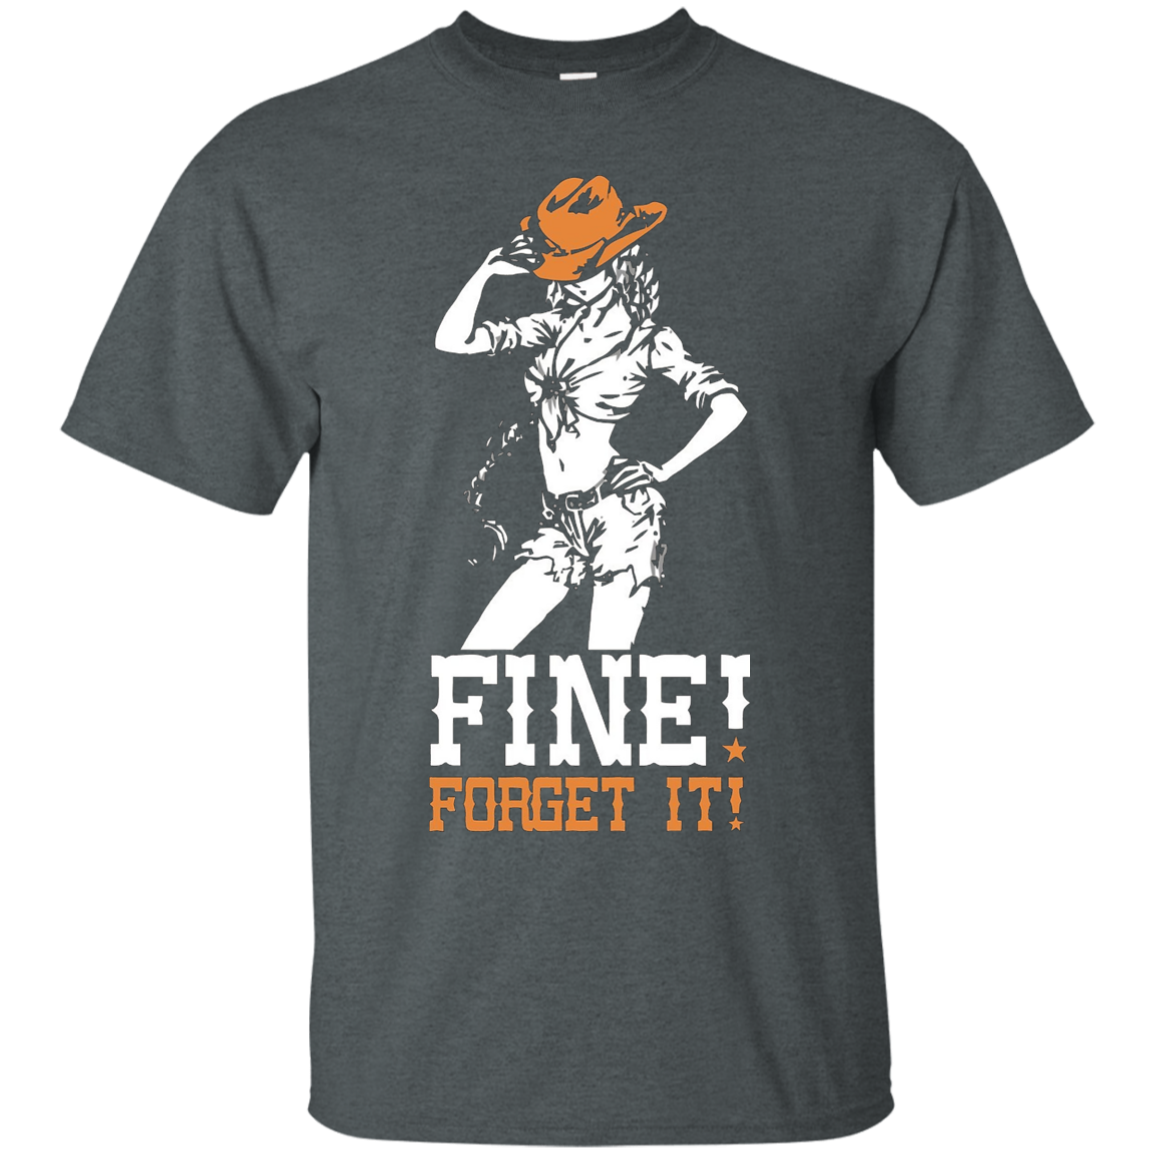 Fine - Forget It shirt